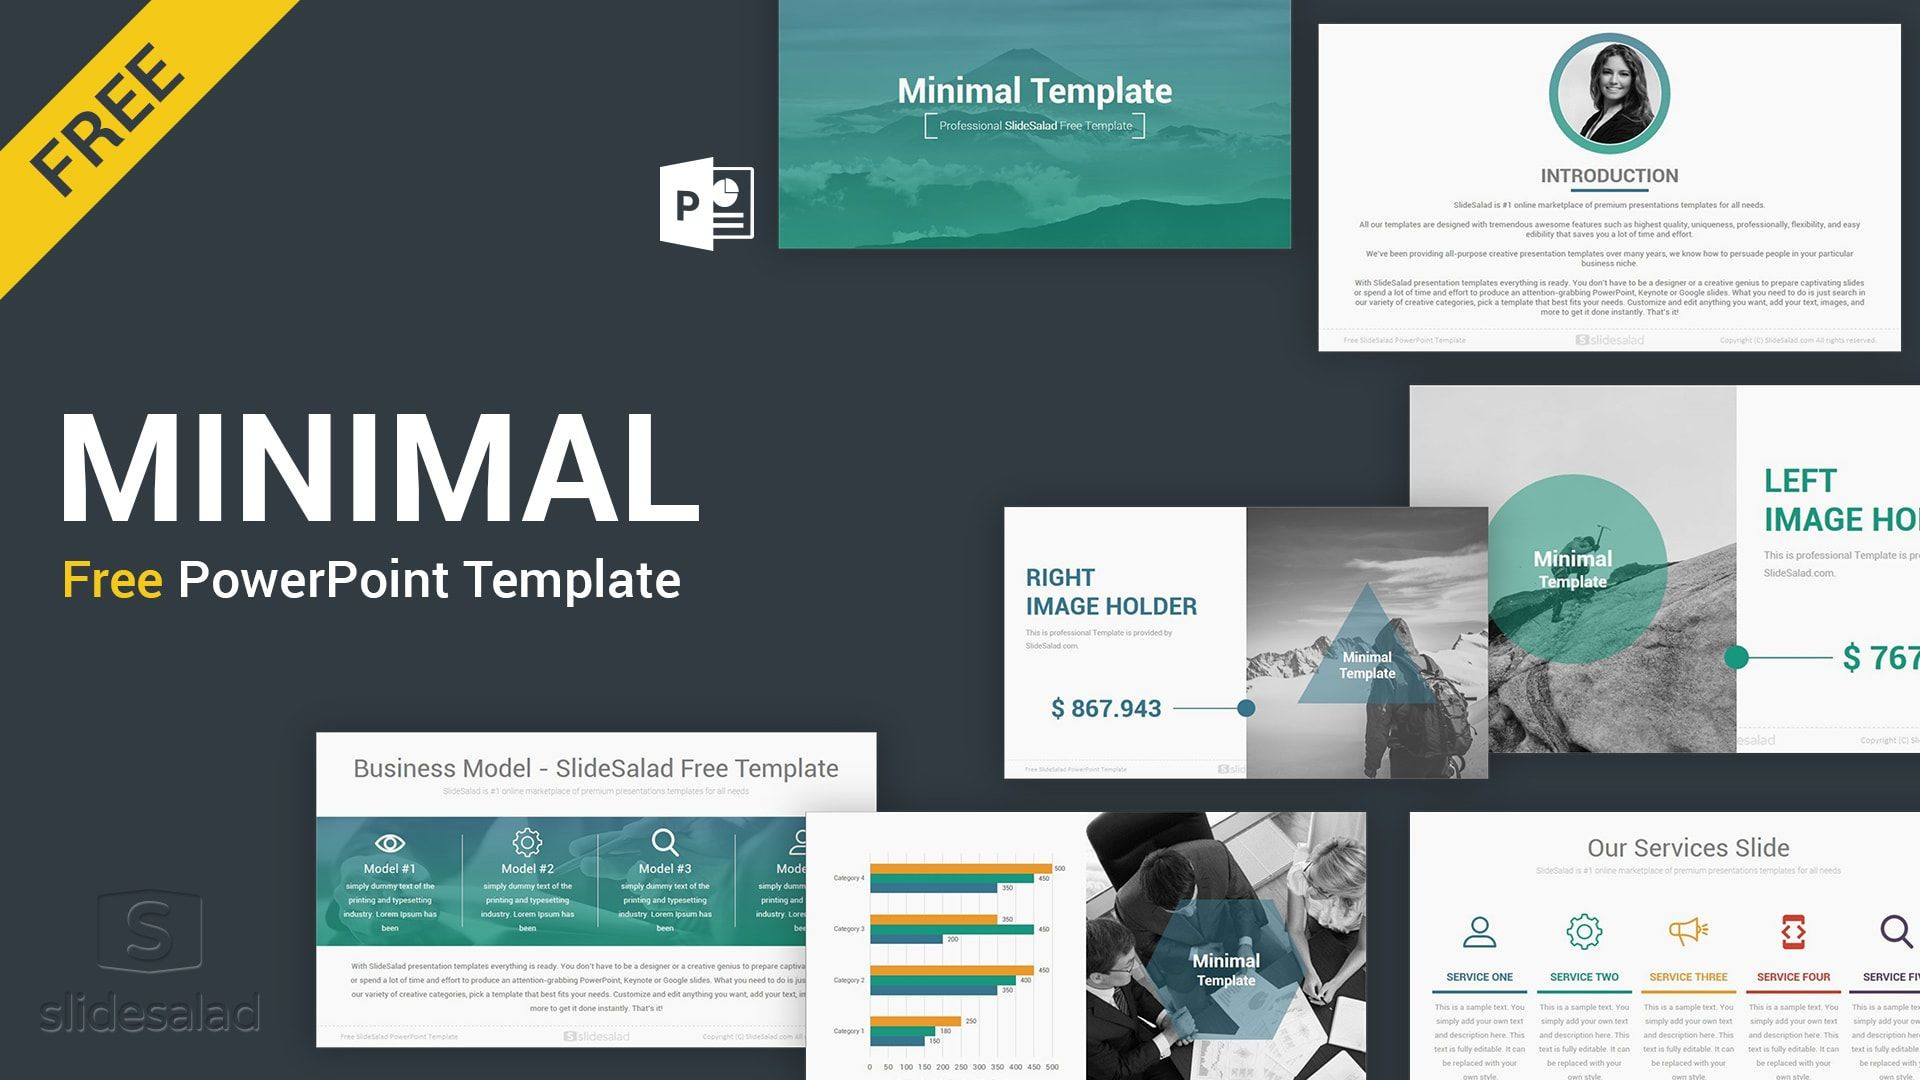 006 Remarkable Power Point Presentation Template Free Idea  Powerpoint Layout Download 2019 Modern Busines1920